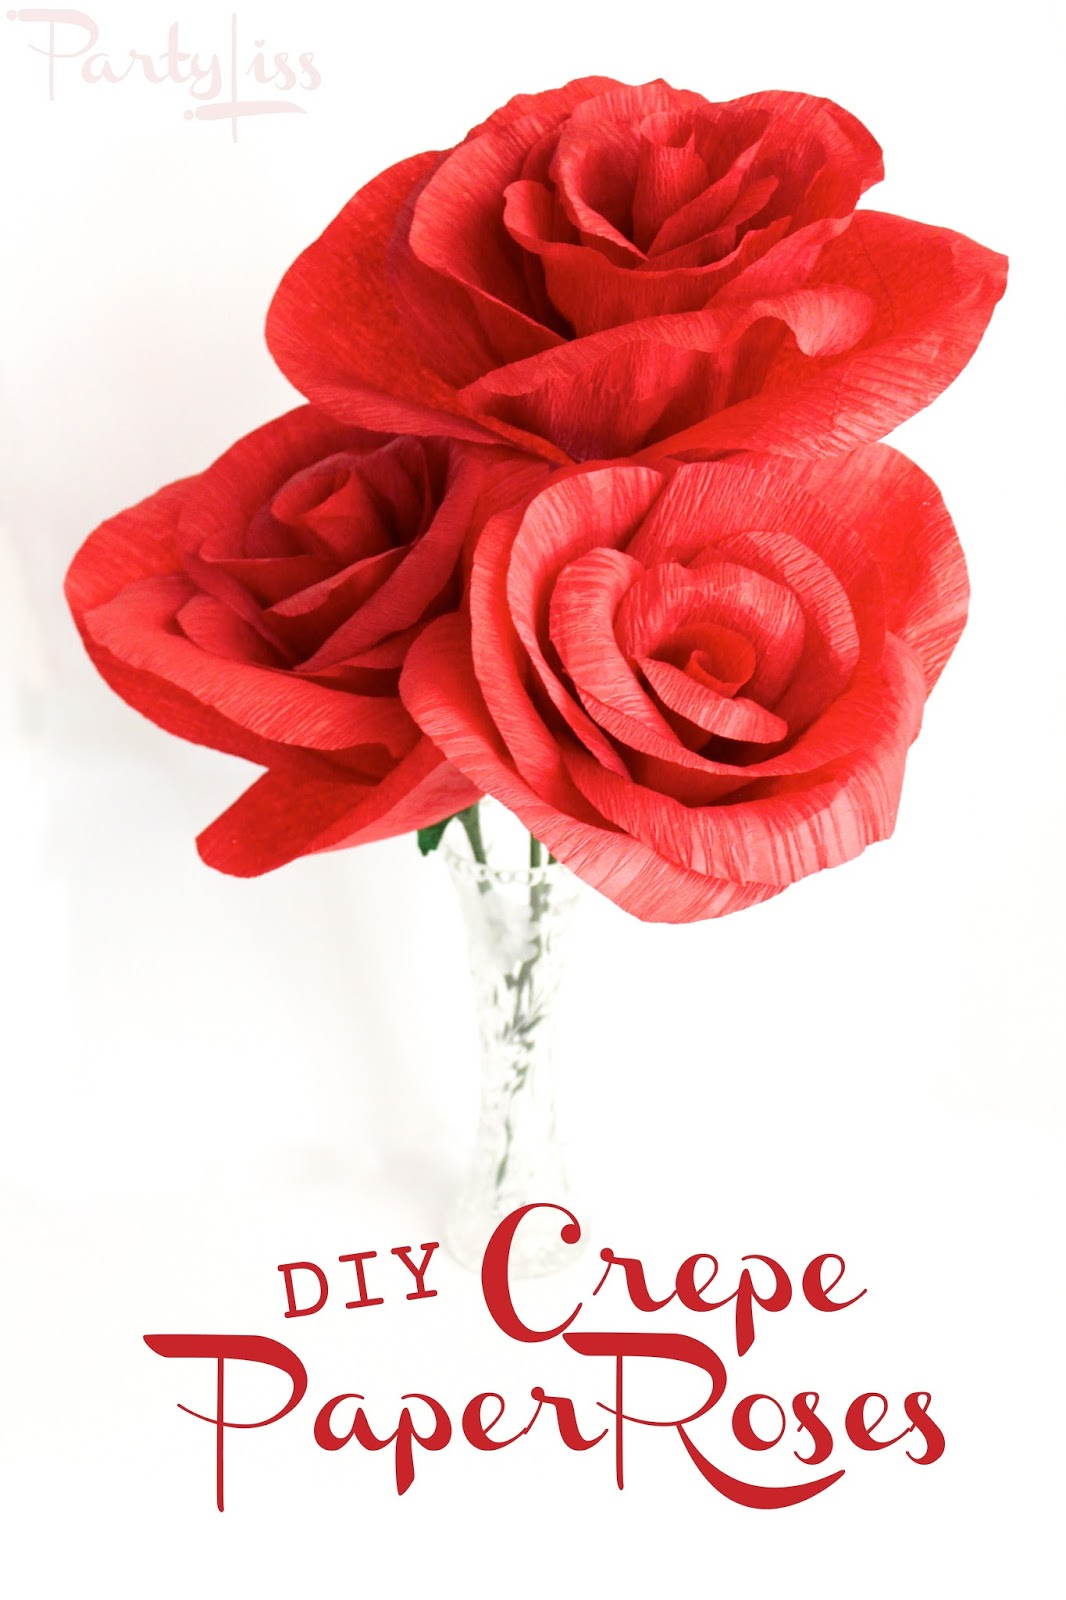 Partyliss Diy Crepe Paper Roses